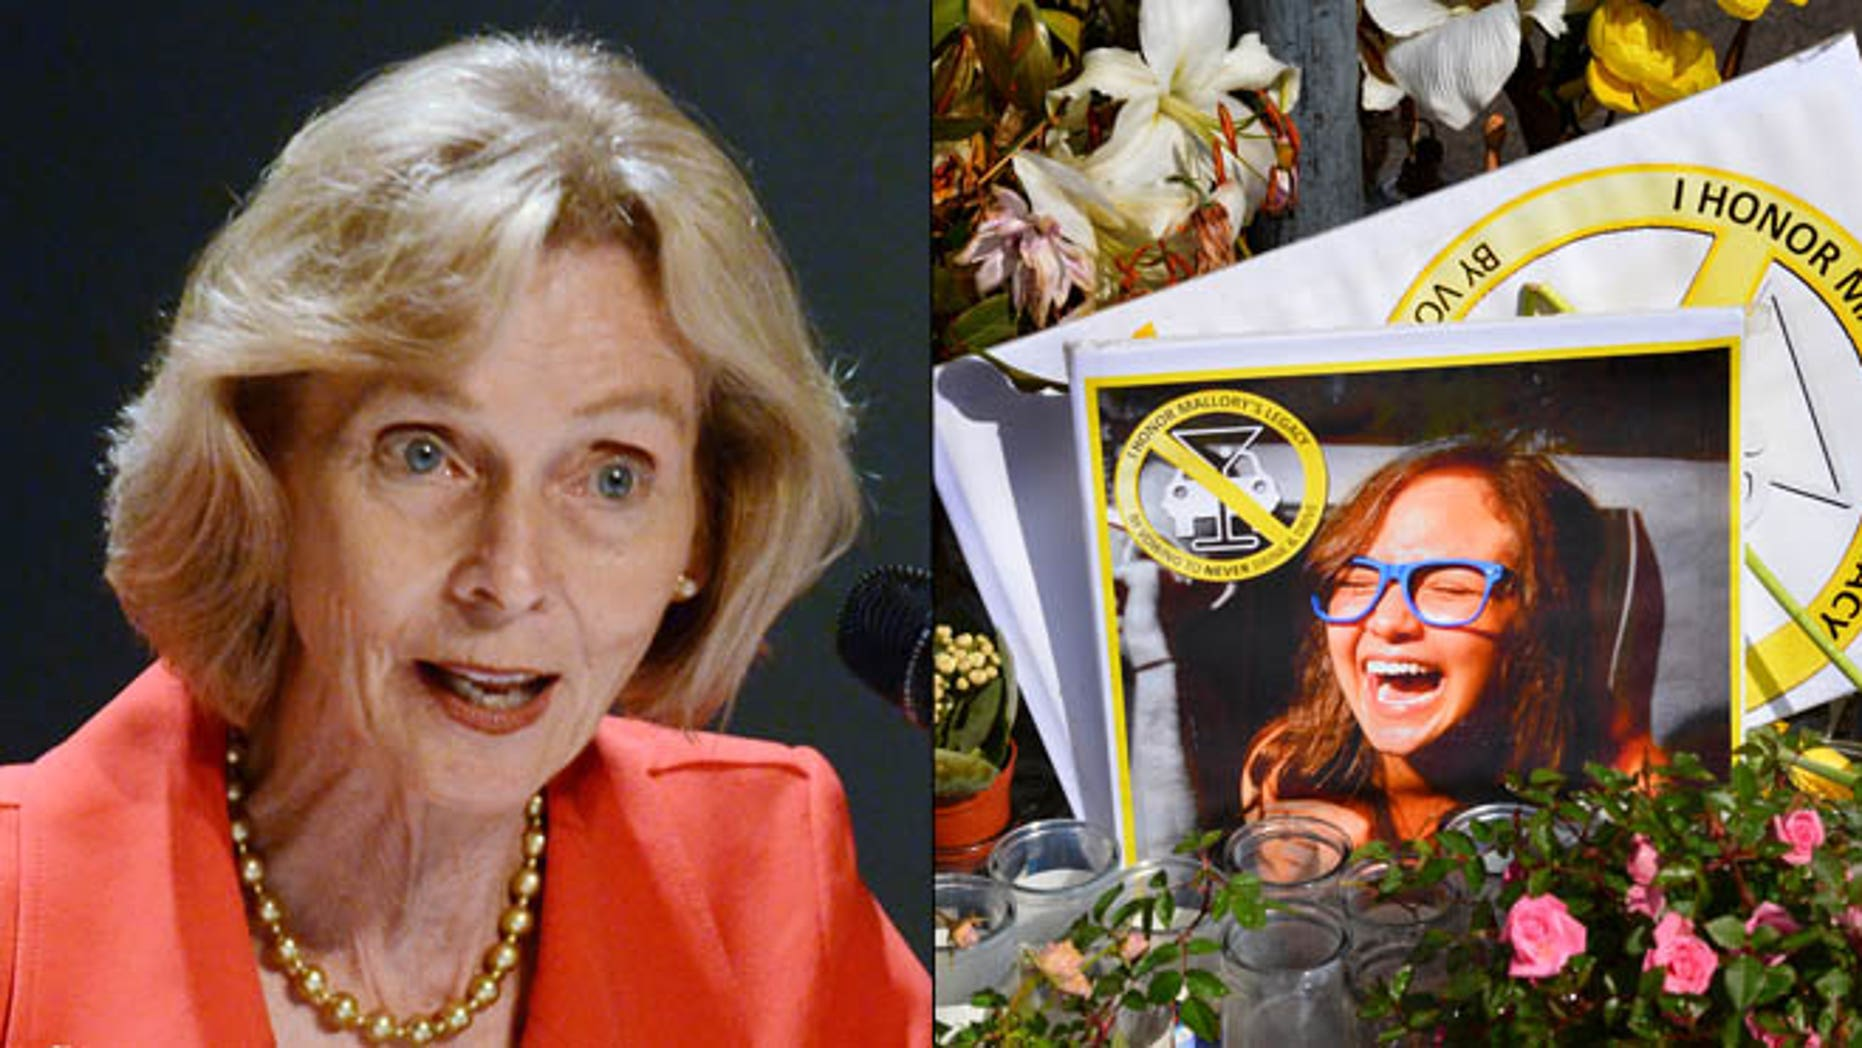 Shown here are Rep. Lois Capps, left, and a memorial for crash victim  Mallory Dies.